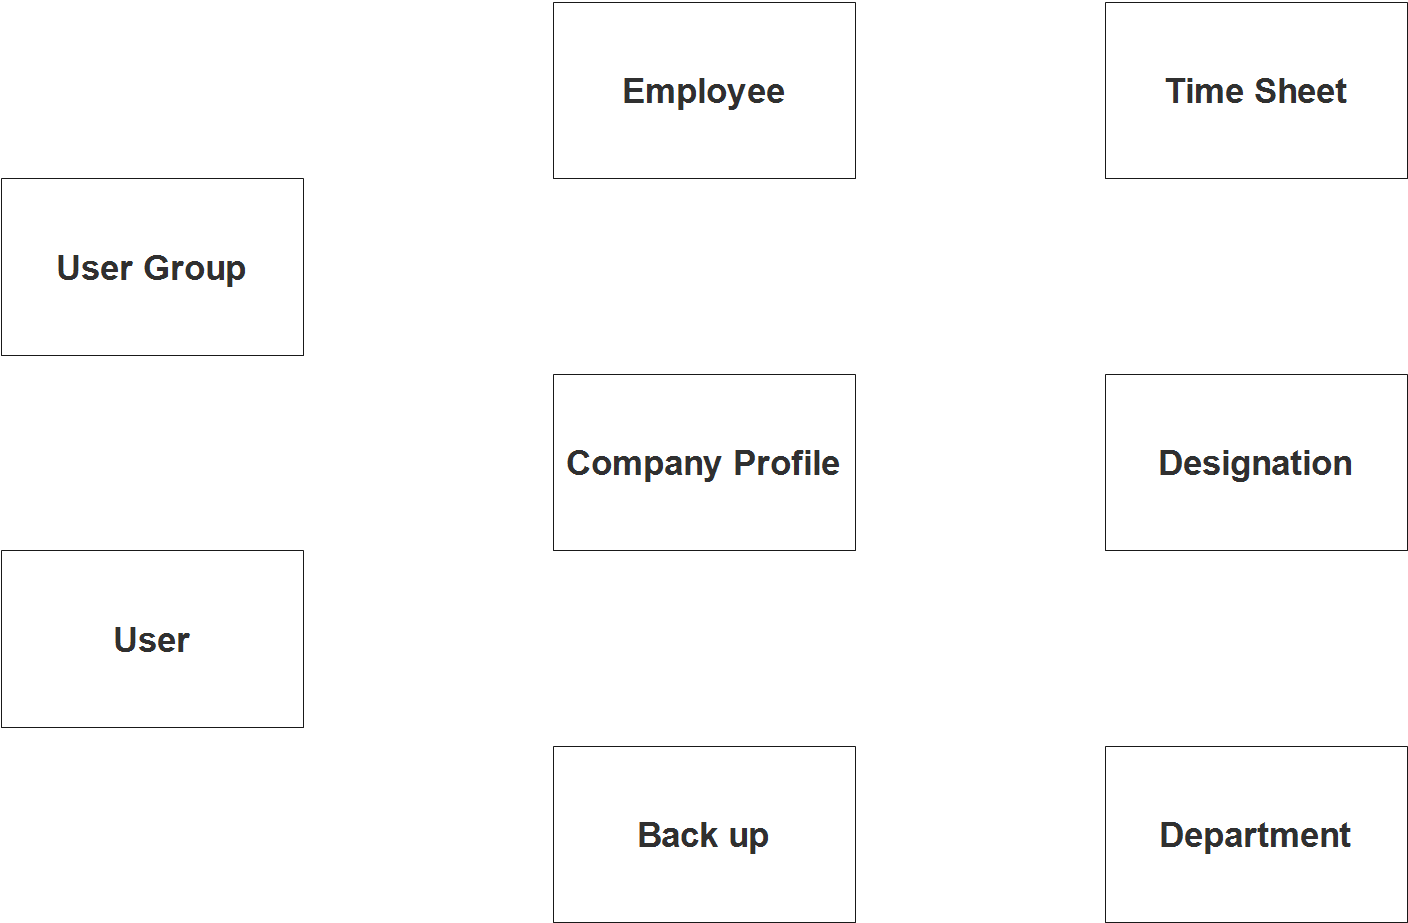 Daily Time Record System ER Diagram - Step 1 Identify Entities